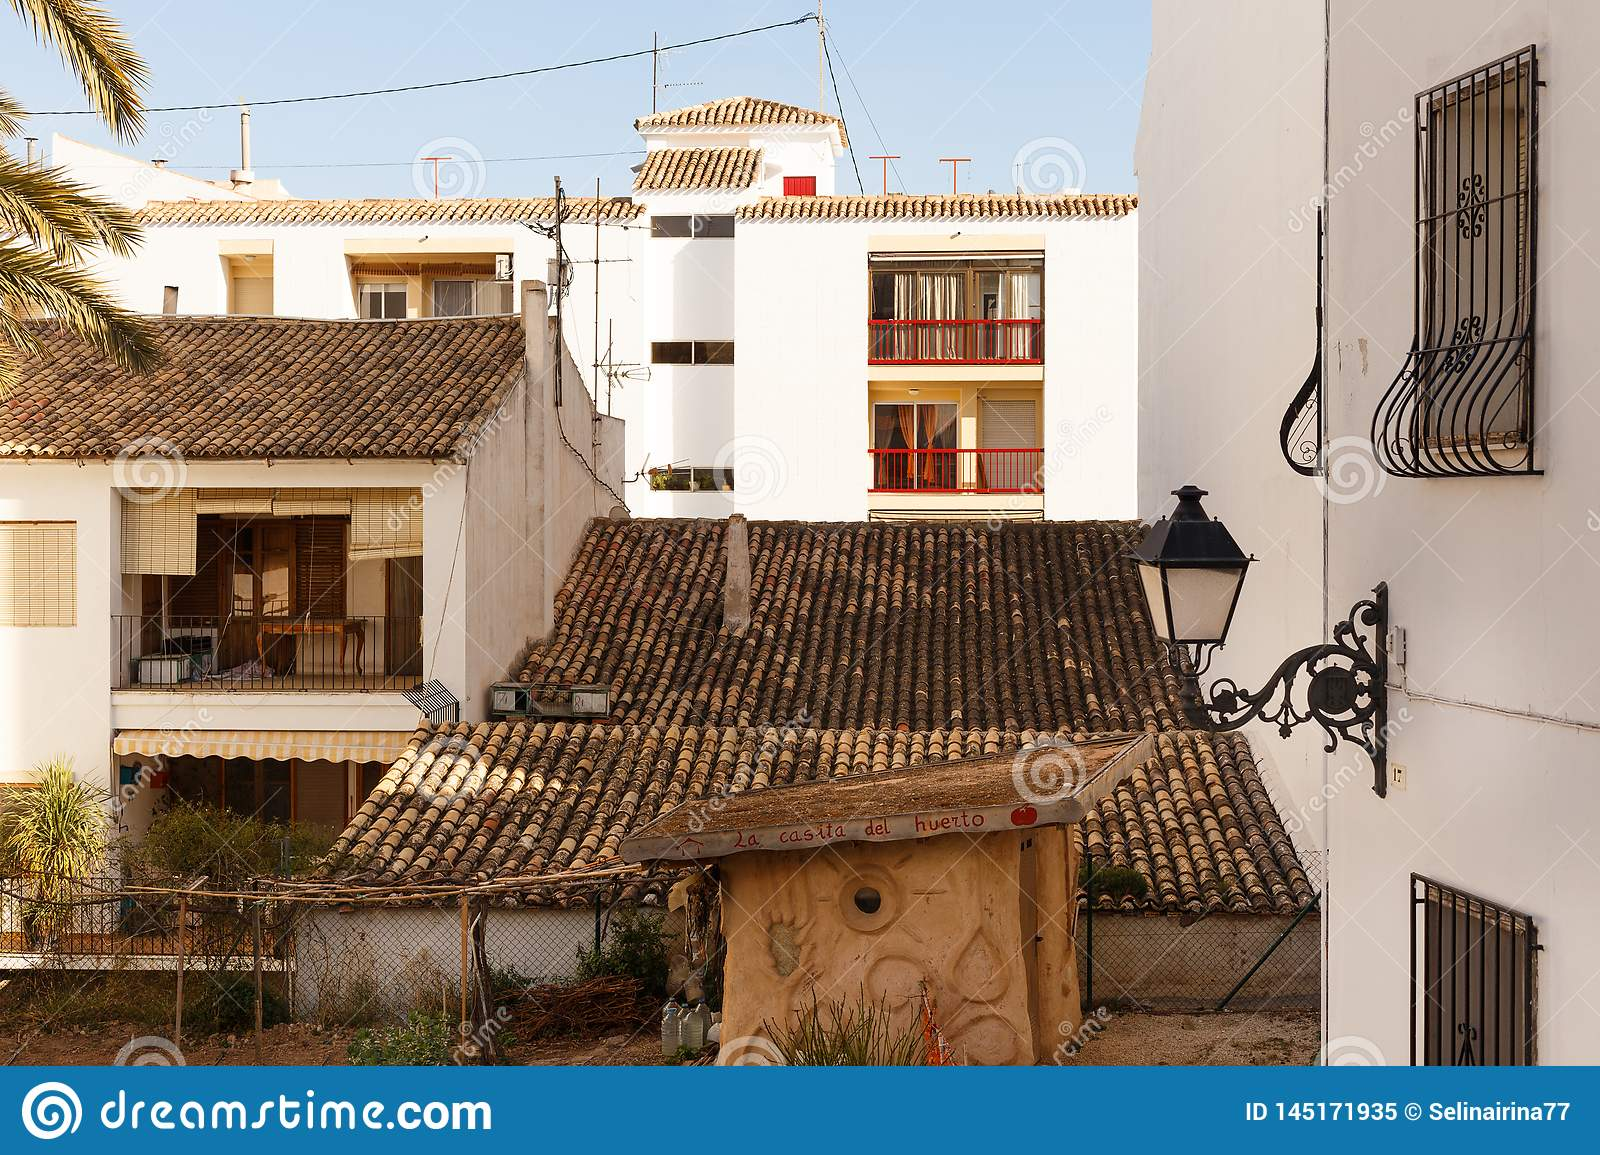 View of white houses with a tiled roof and balconies, and forged lantern in the old town of Altea, Spain on a hot sunny